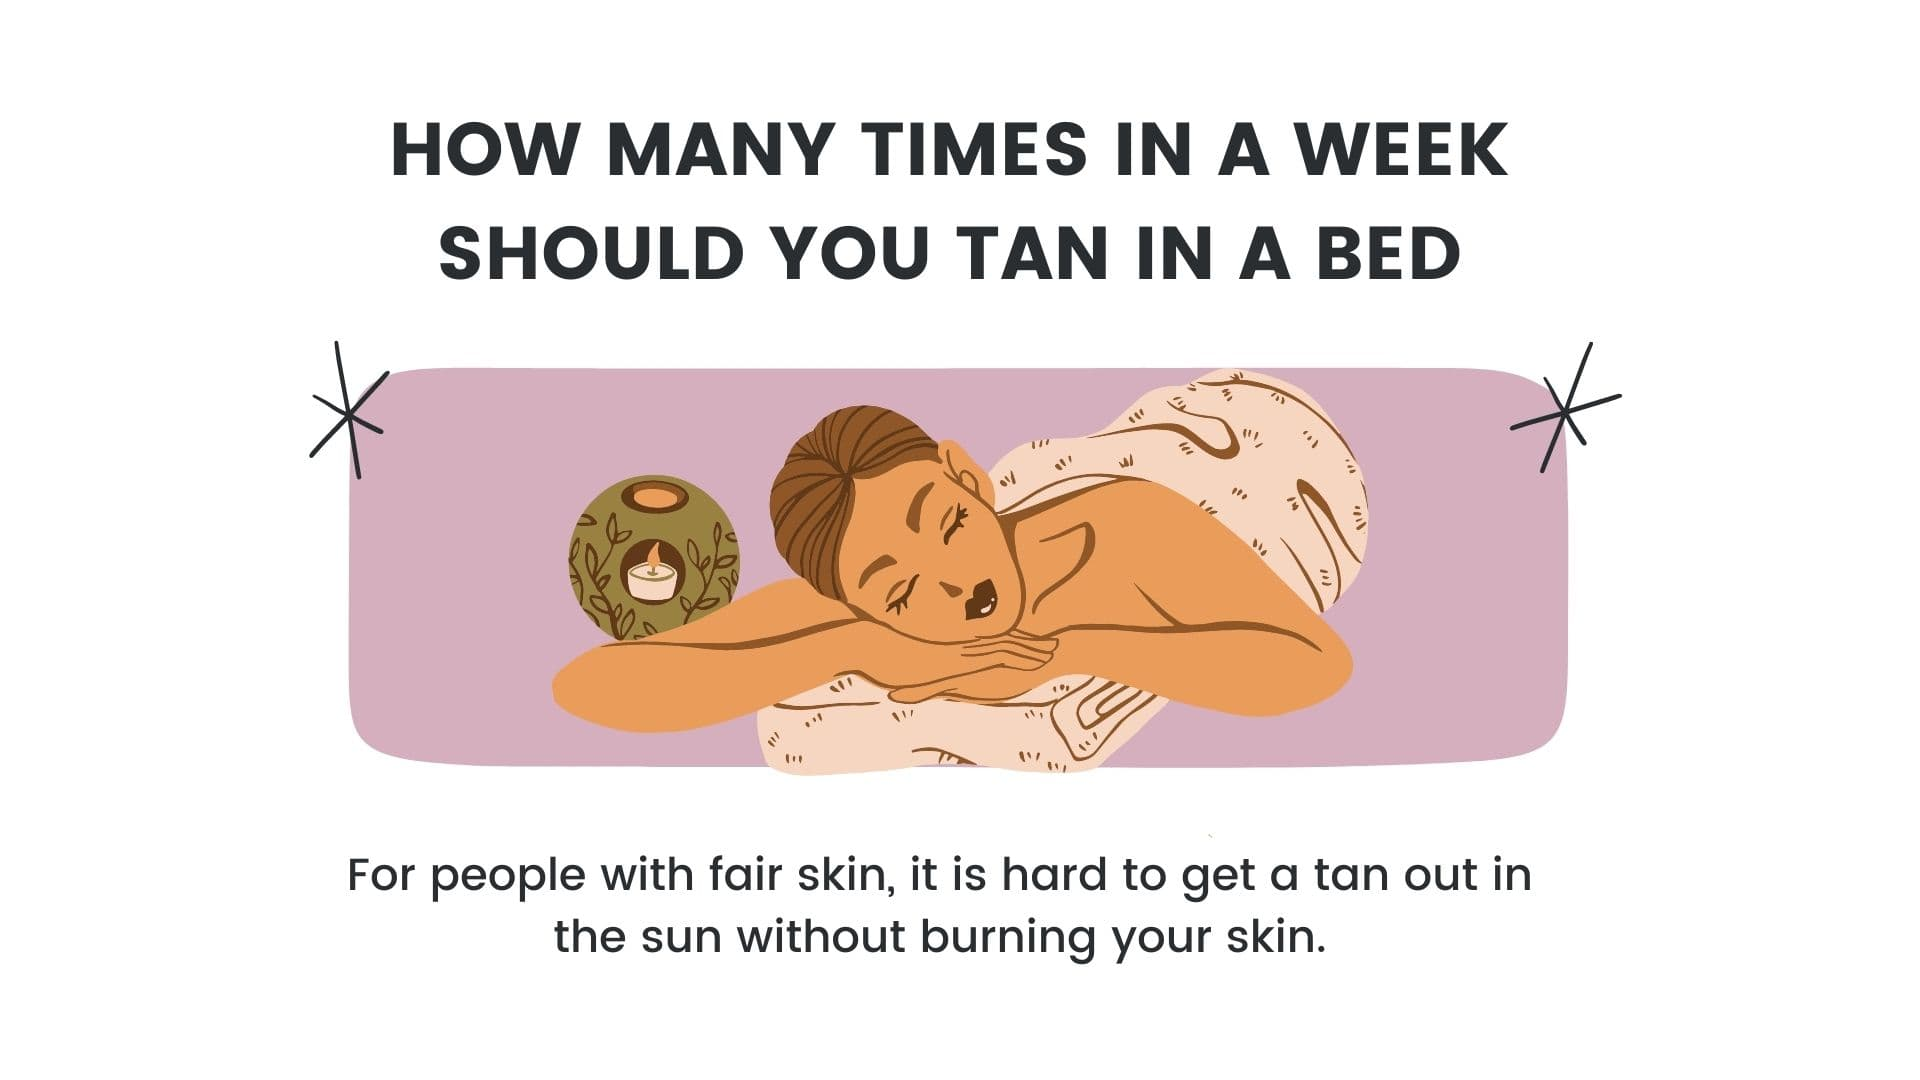 How many times in a week should you tan in a bed